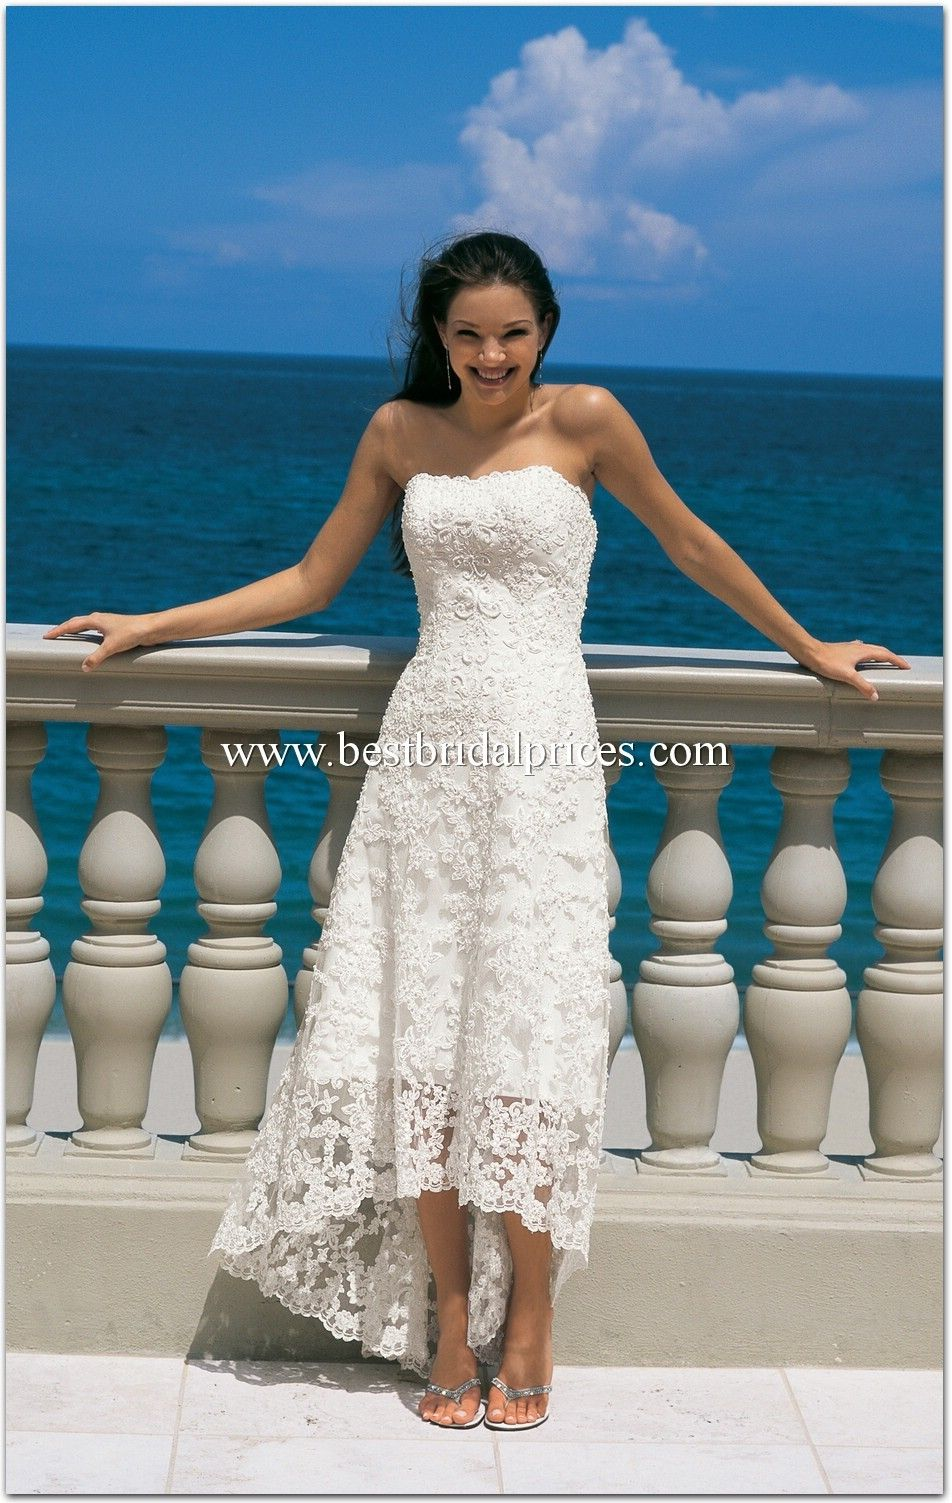 Alfred angelo wedding dresses style 1774nt 1774nt 84900 alfred angelo wedding dresses style 1774nt 1774nt 84900 wedding dresses ombrellifo Gallery